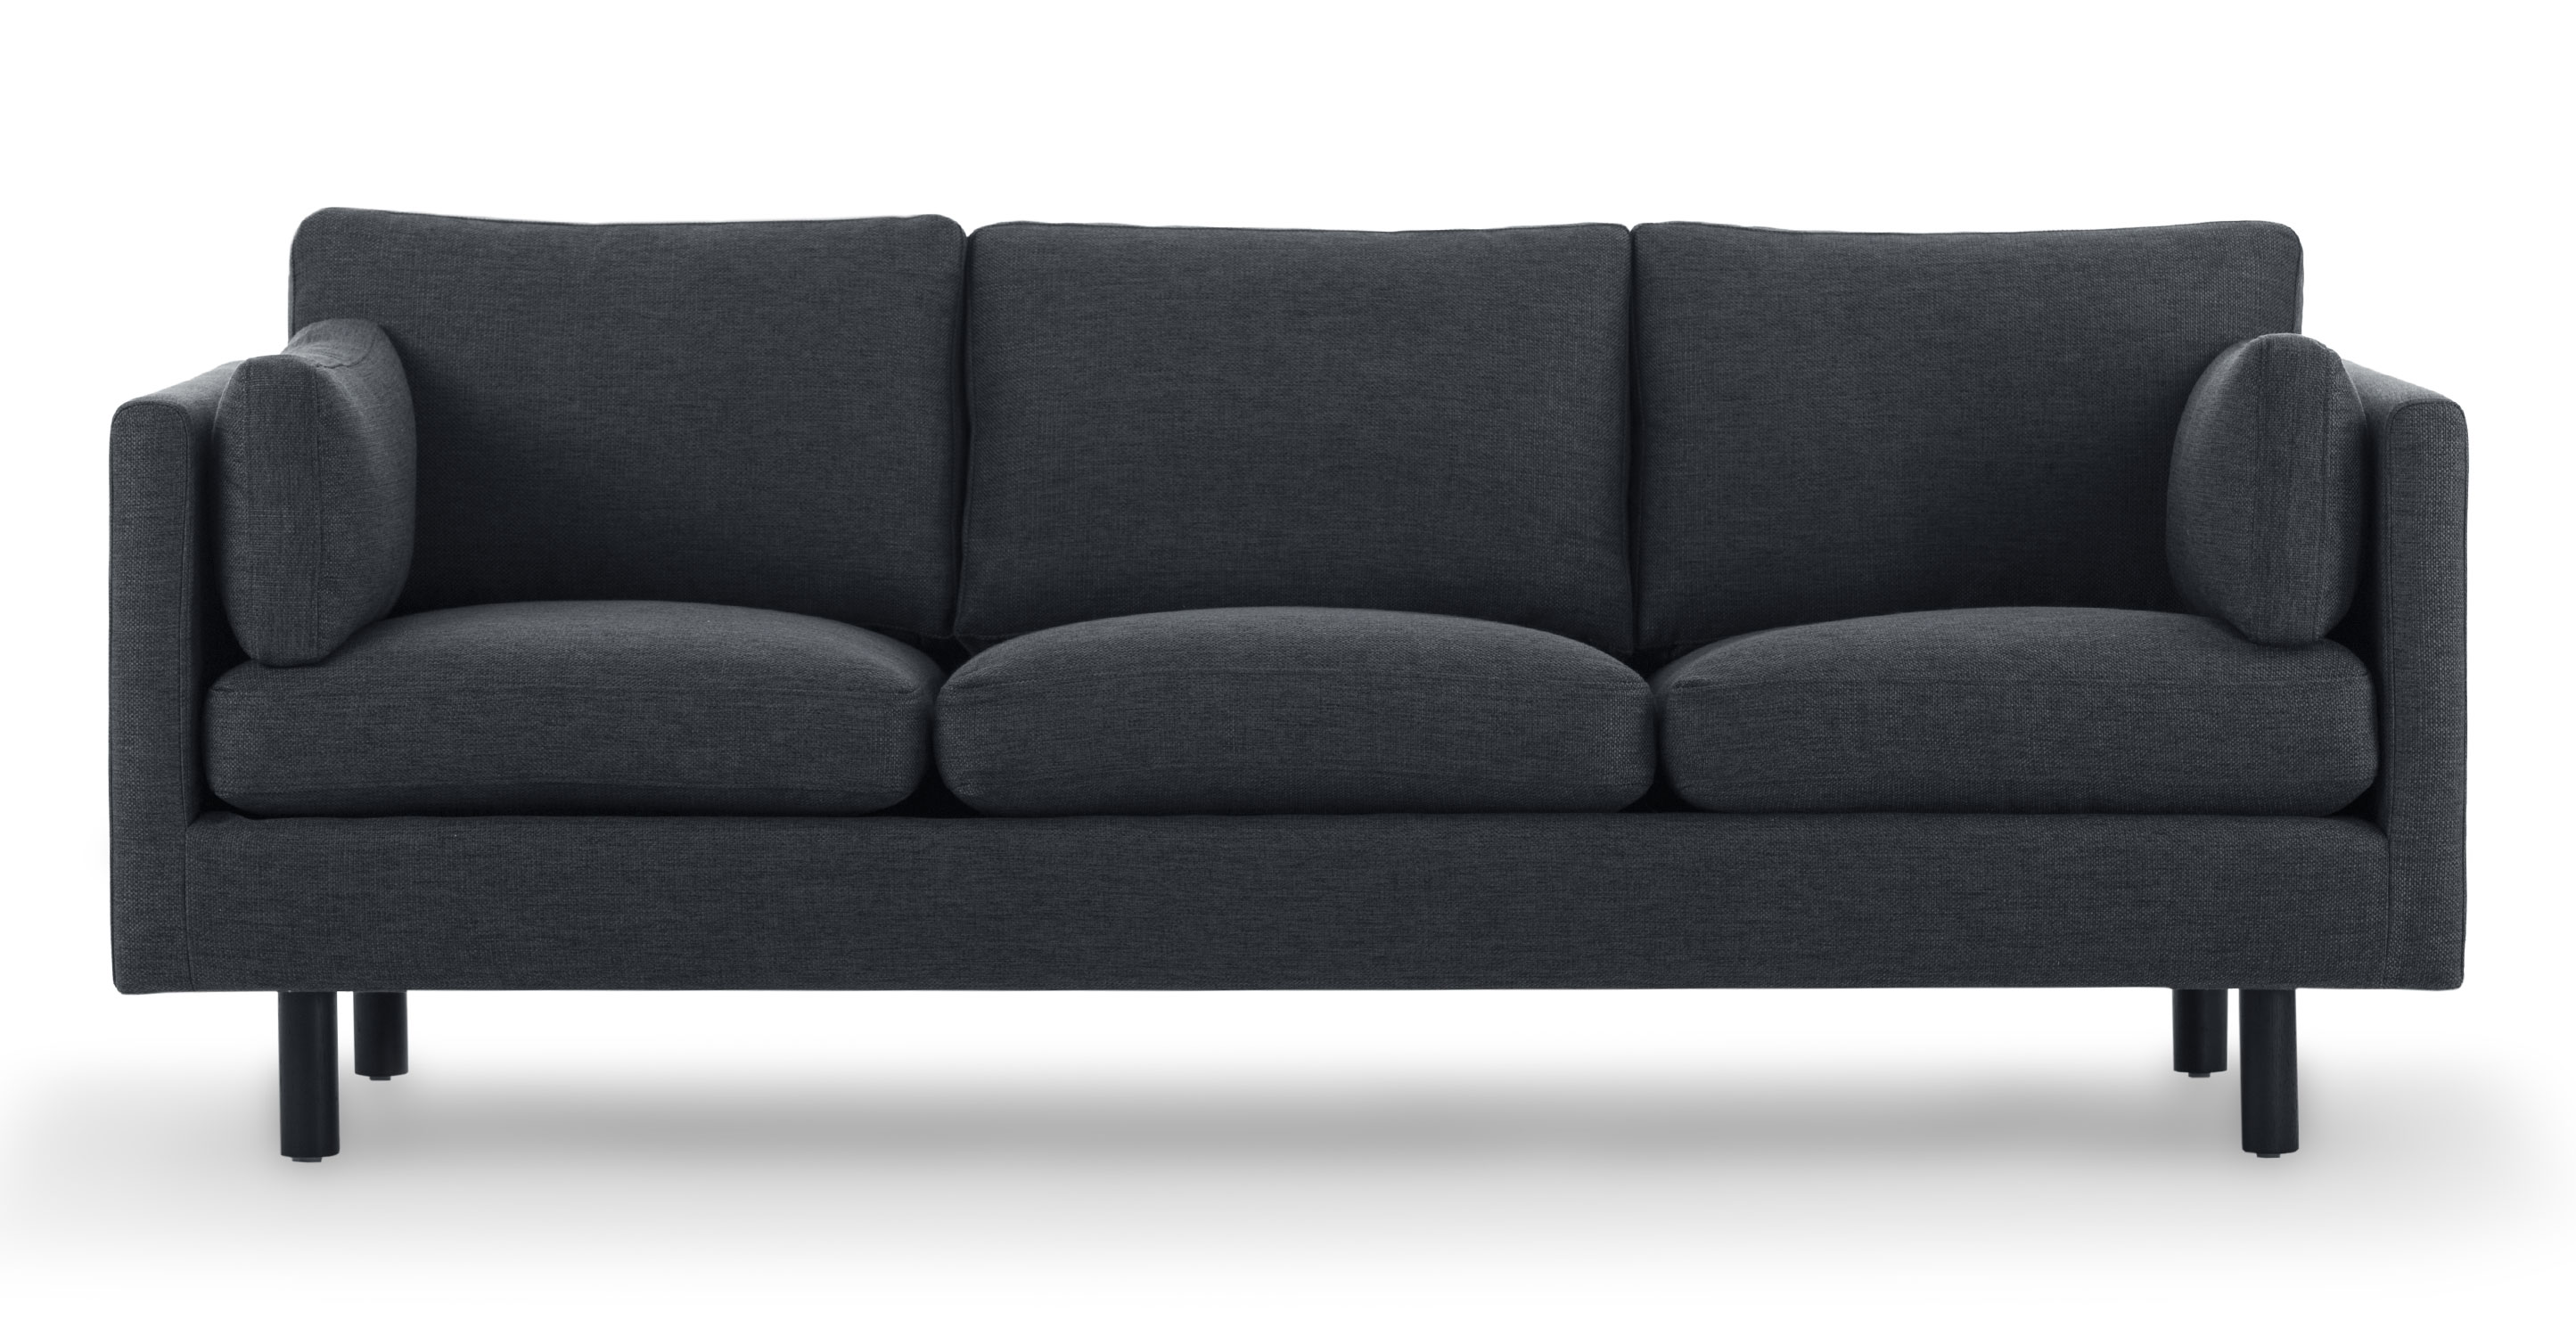 nova bard gray sofa sofas article modern mid century and scandinavian furniture. Black Bedroom Furniture Sets. Home Design Ideas